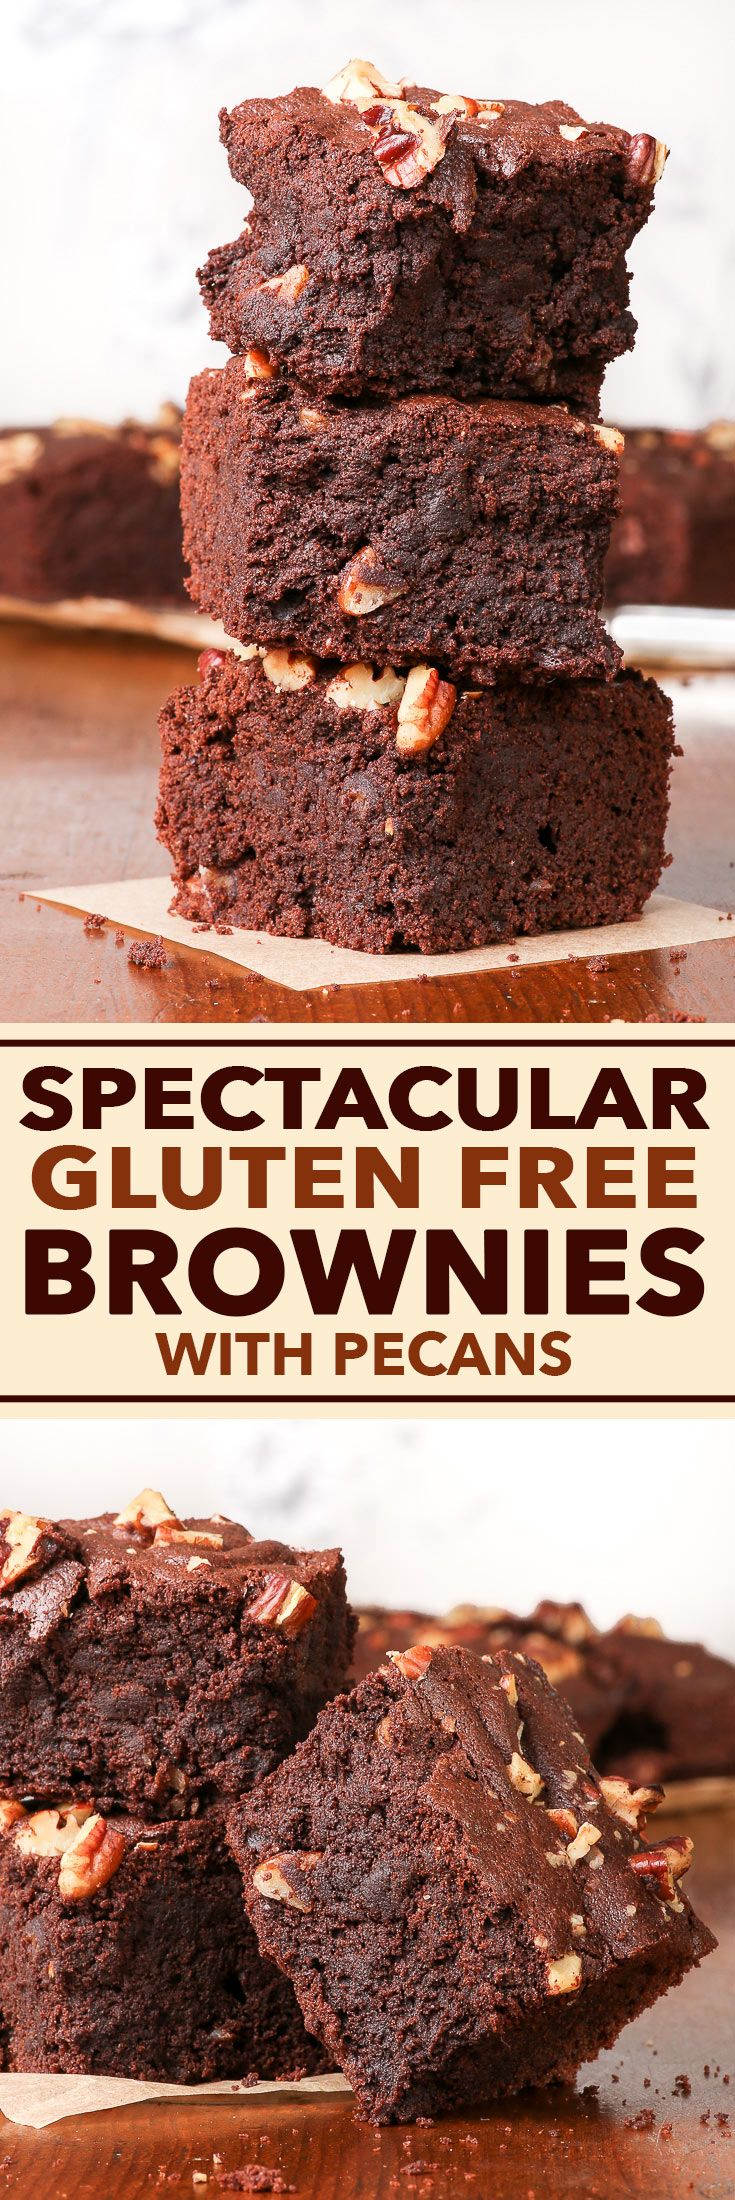 Gluten Free Brownies with Pecans - These SPECTACULAR gluten free brownies are just the right amount of sweet, gooey and chocolatey. The chopped pecans add a wonderful crunch, and the addition of salt and coffee into the brownie batter makes their flavour pop. Easy and quick to make, this just might be your new favourite brownie recipe.